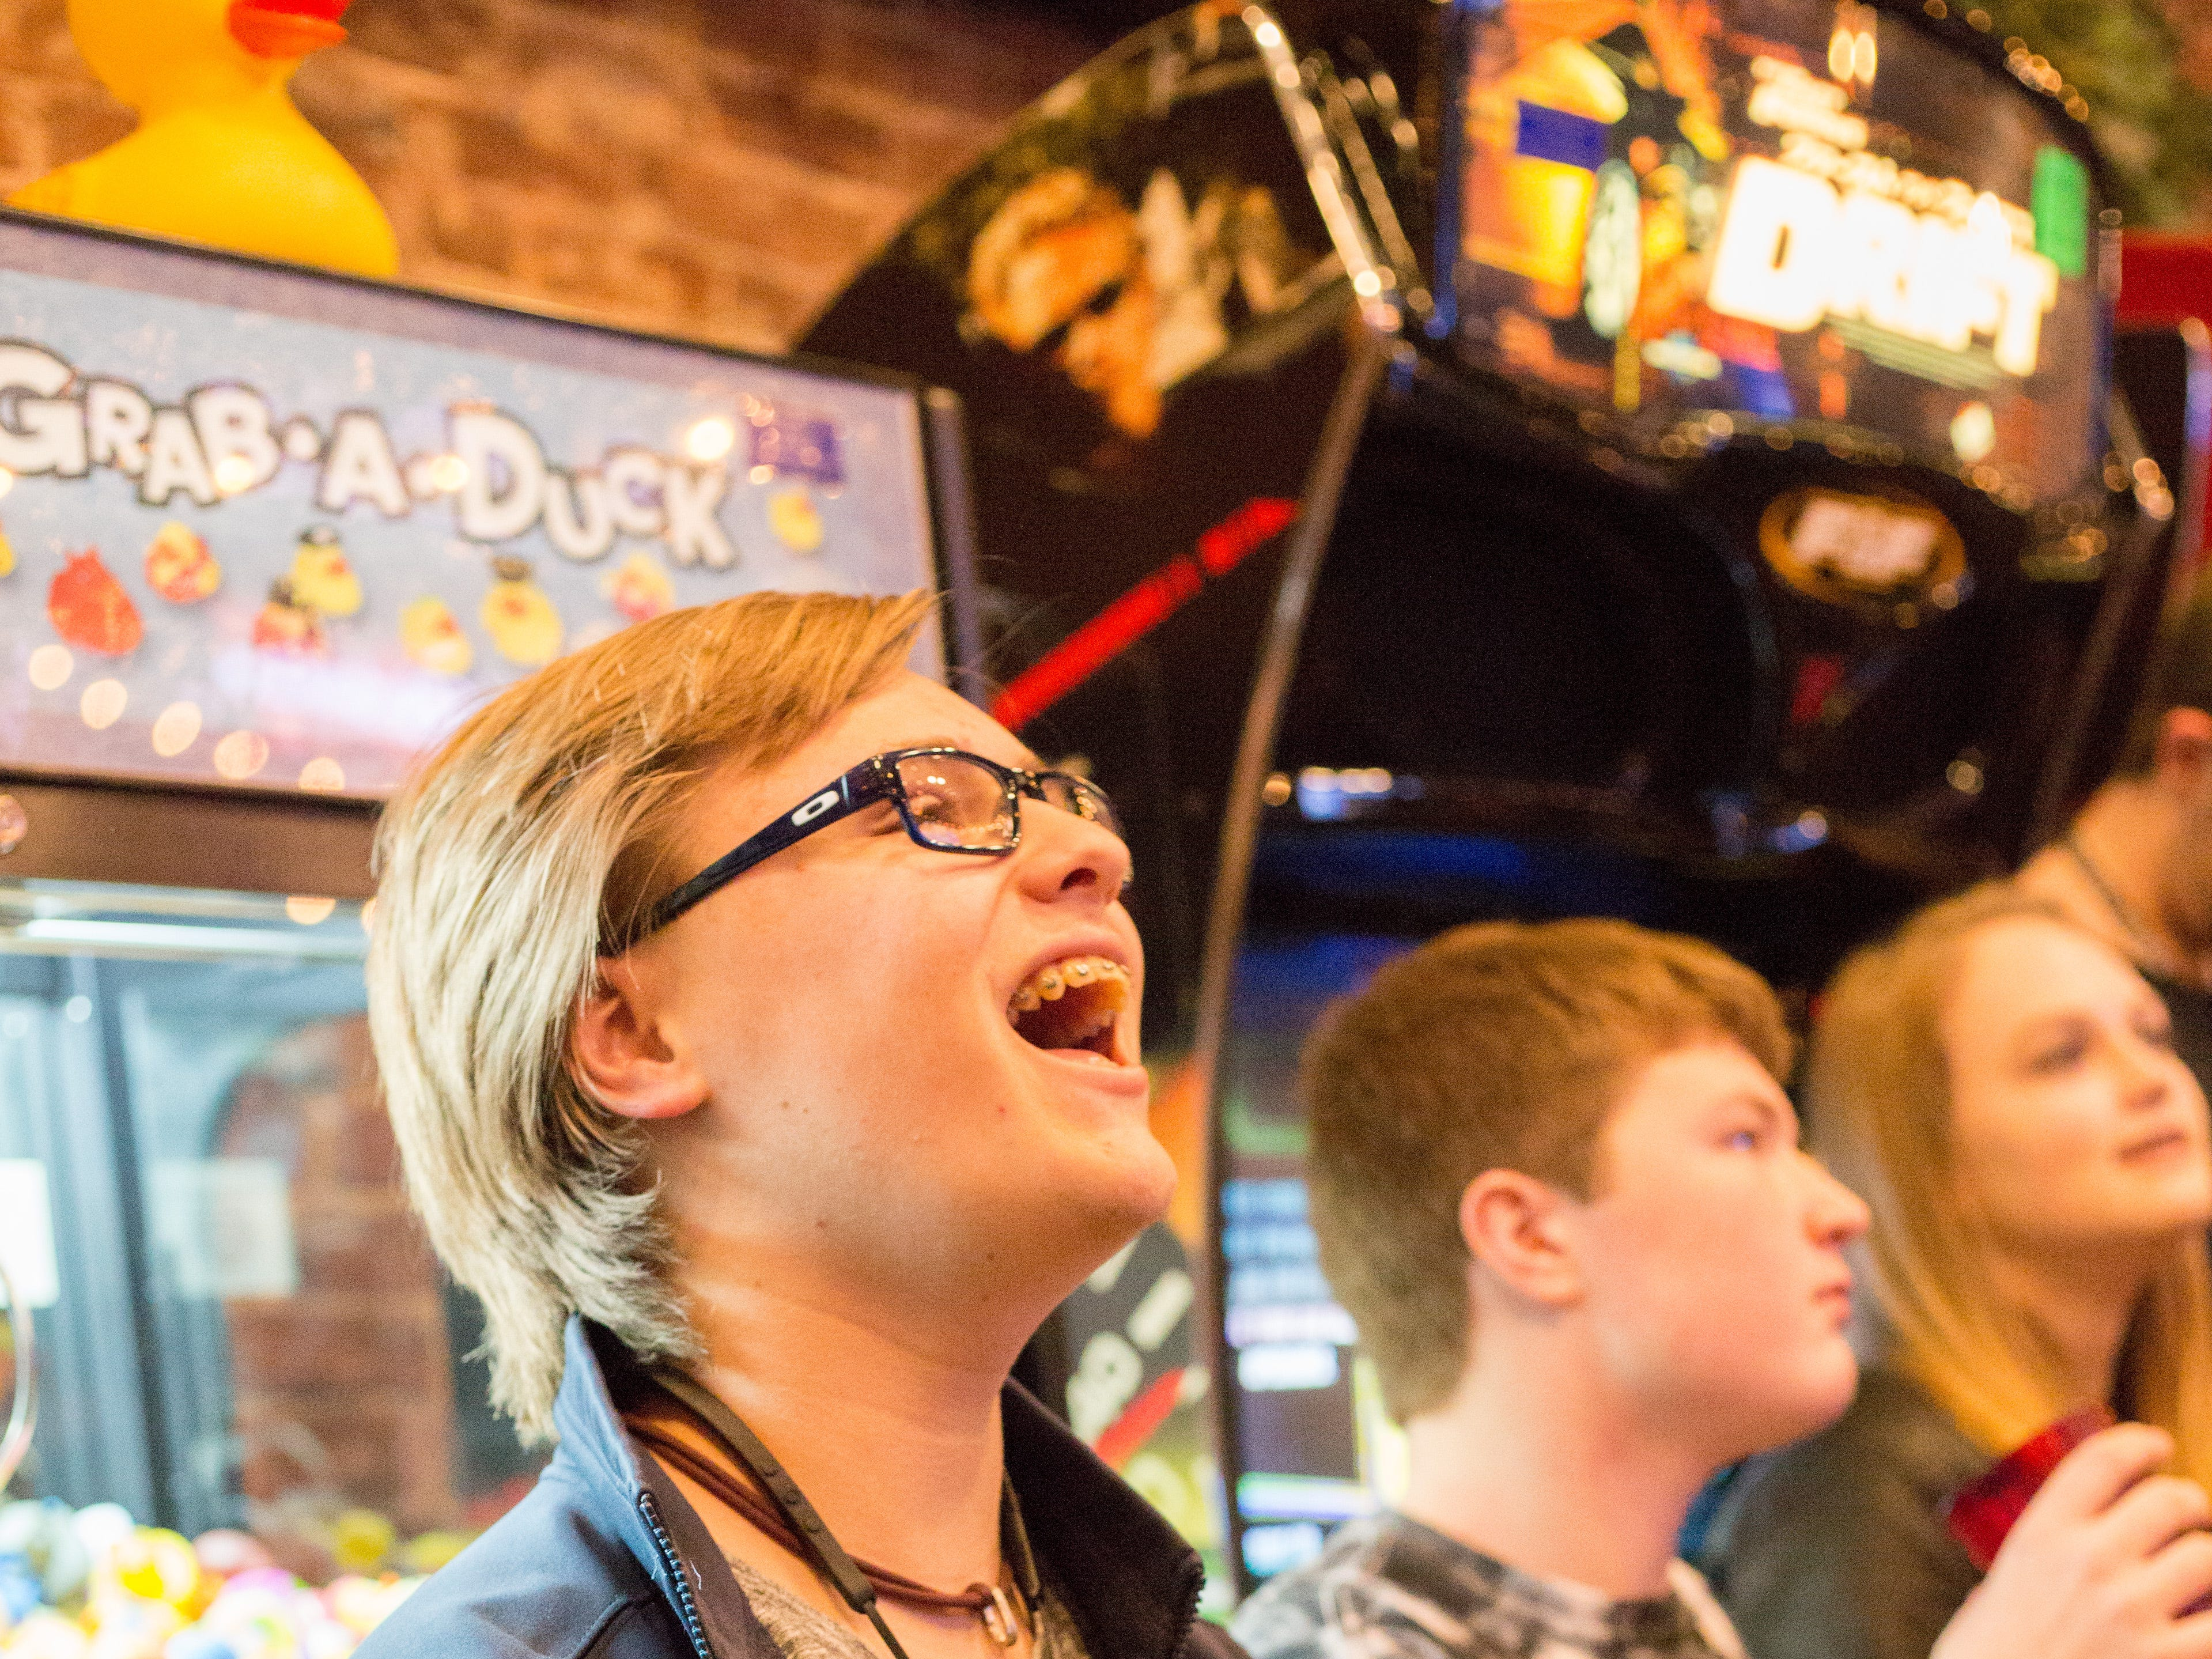 Isaac Morrison has a blast during a Super Smash Brothers Ultimate Tournament presented by Big Dad Games at Filly's Game and Grill in Gallatin on Monday, Jan 14.